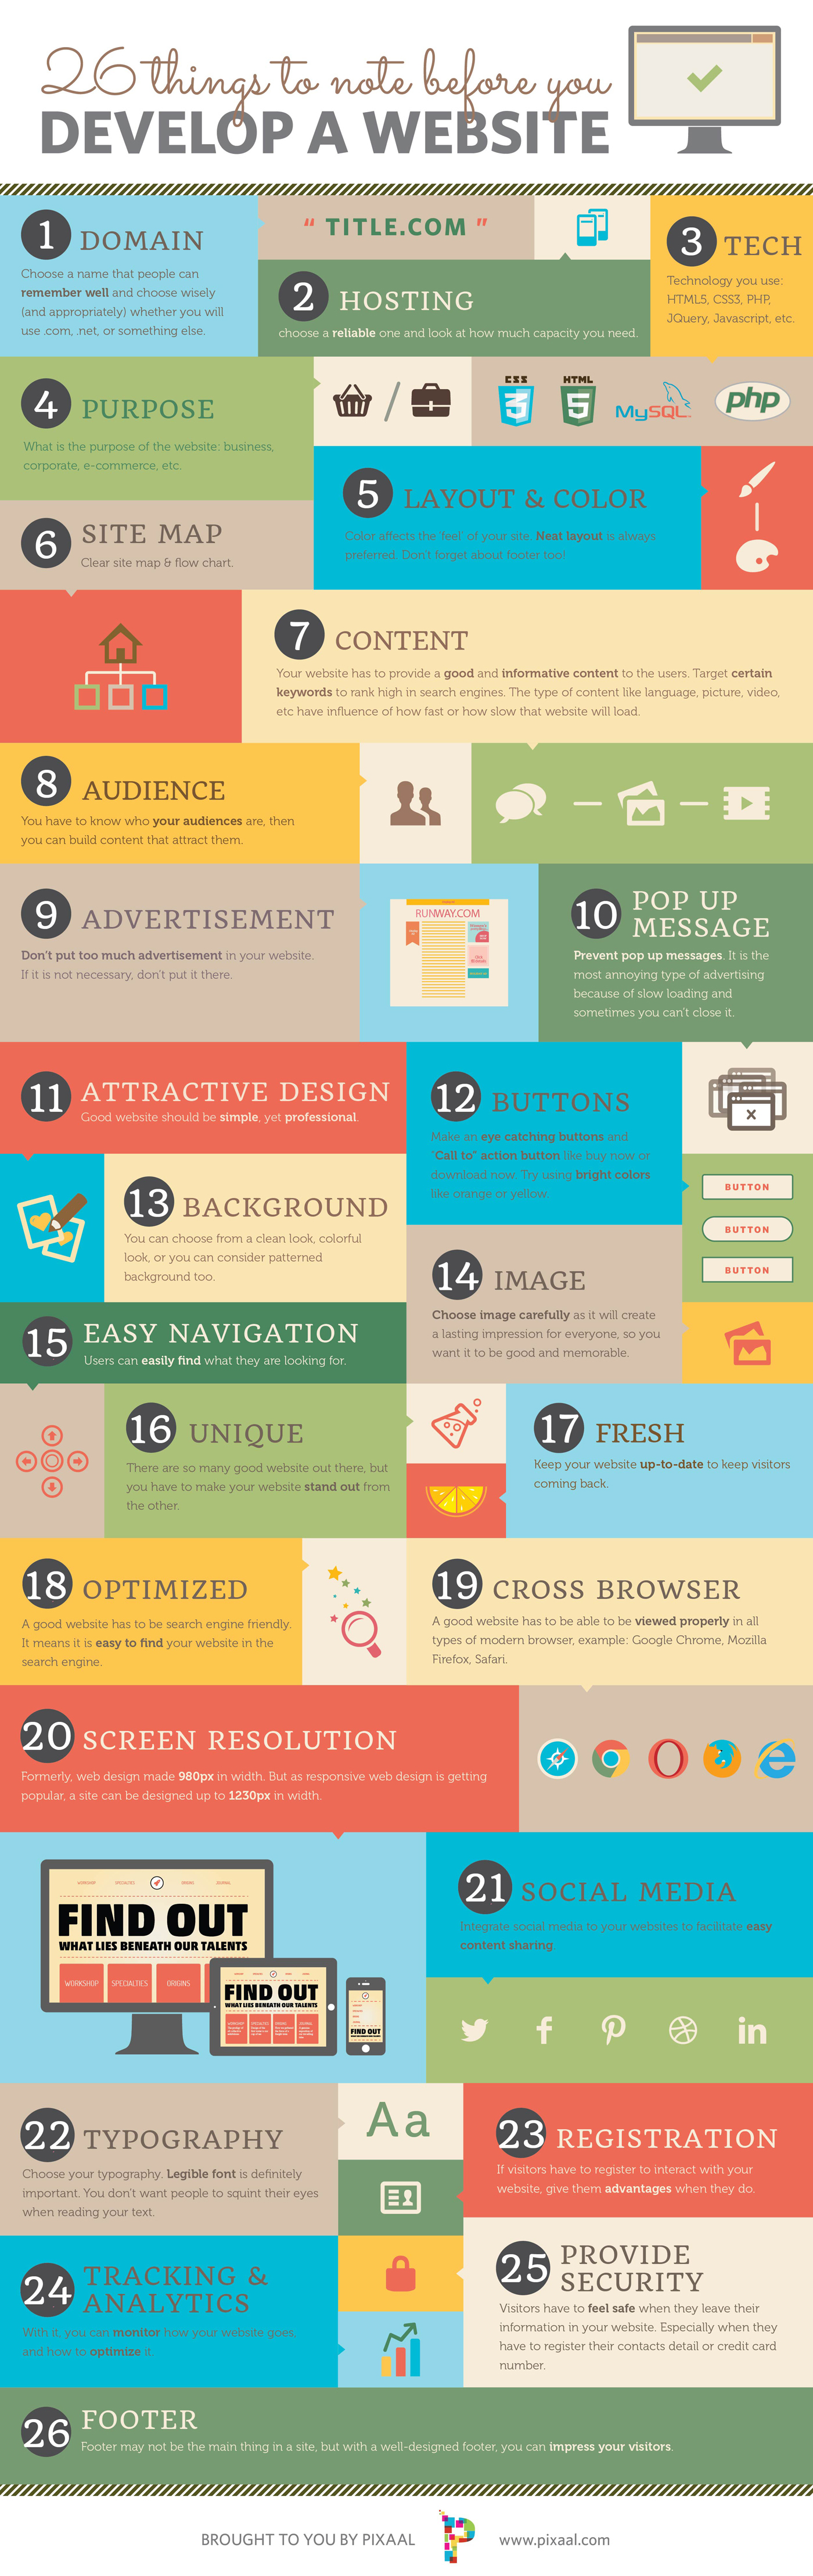 26 things to consider before developing a website1 Developing a Website? 26 Components to Consider Before you Start